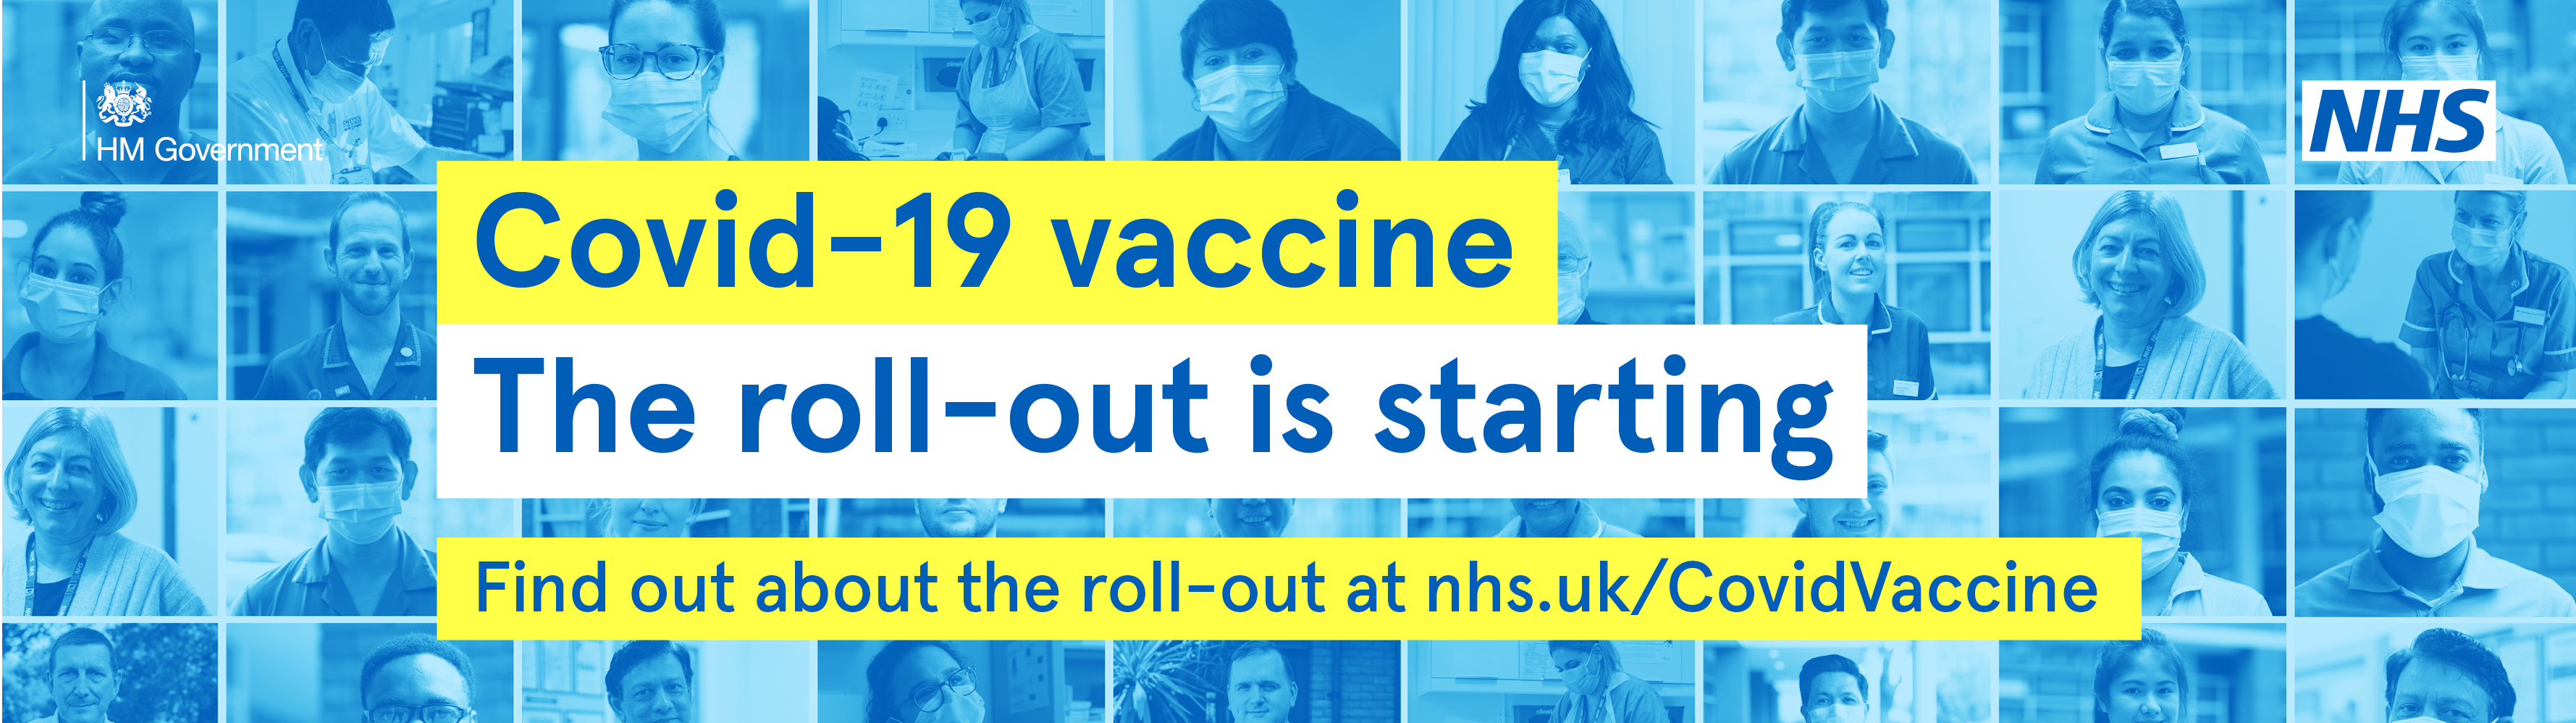 COVID-19 vaccination information - North Central London CCG